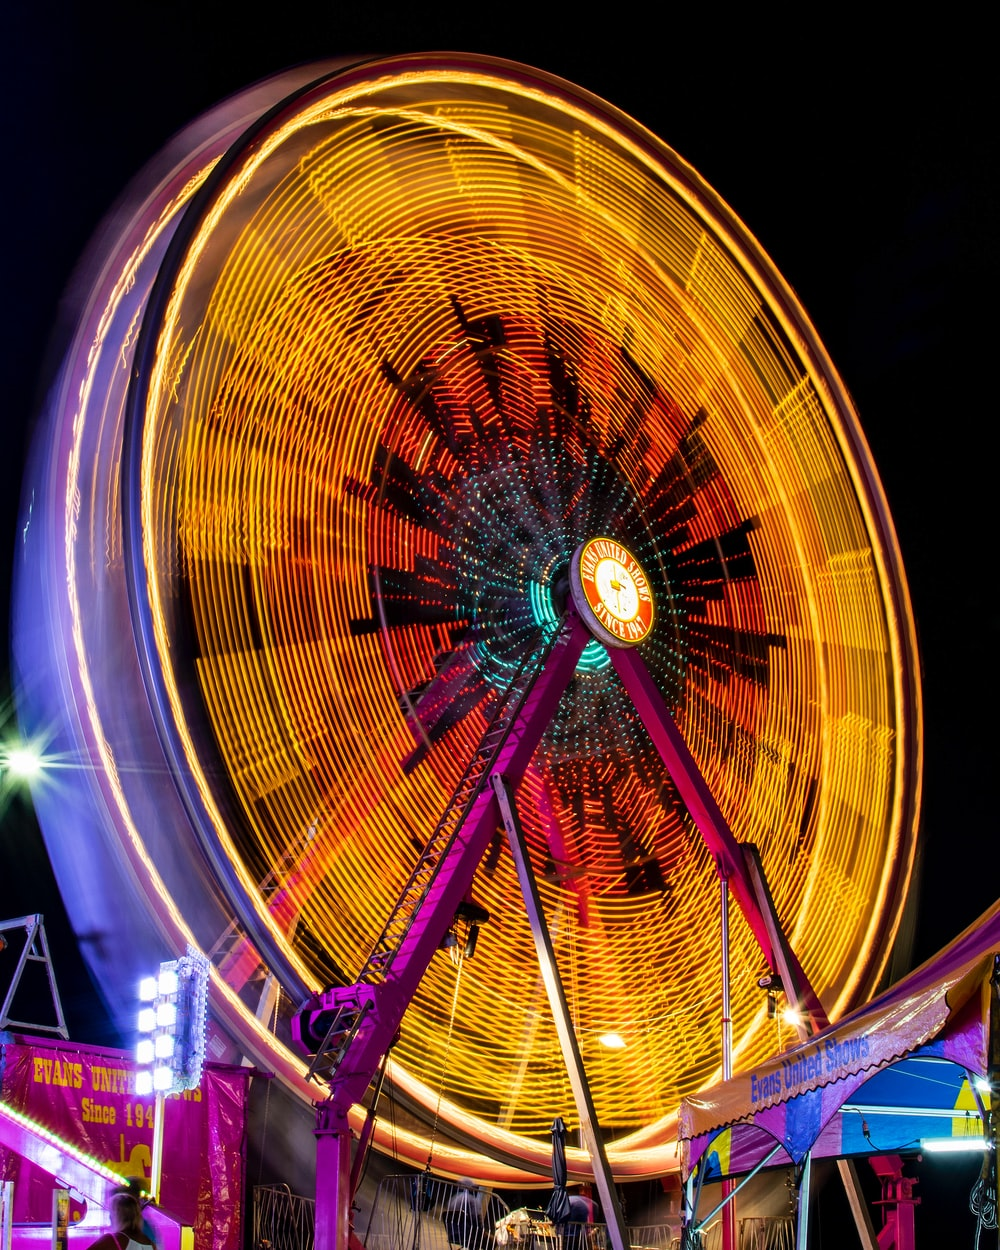 yellow and pink Ferris wheel